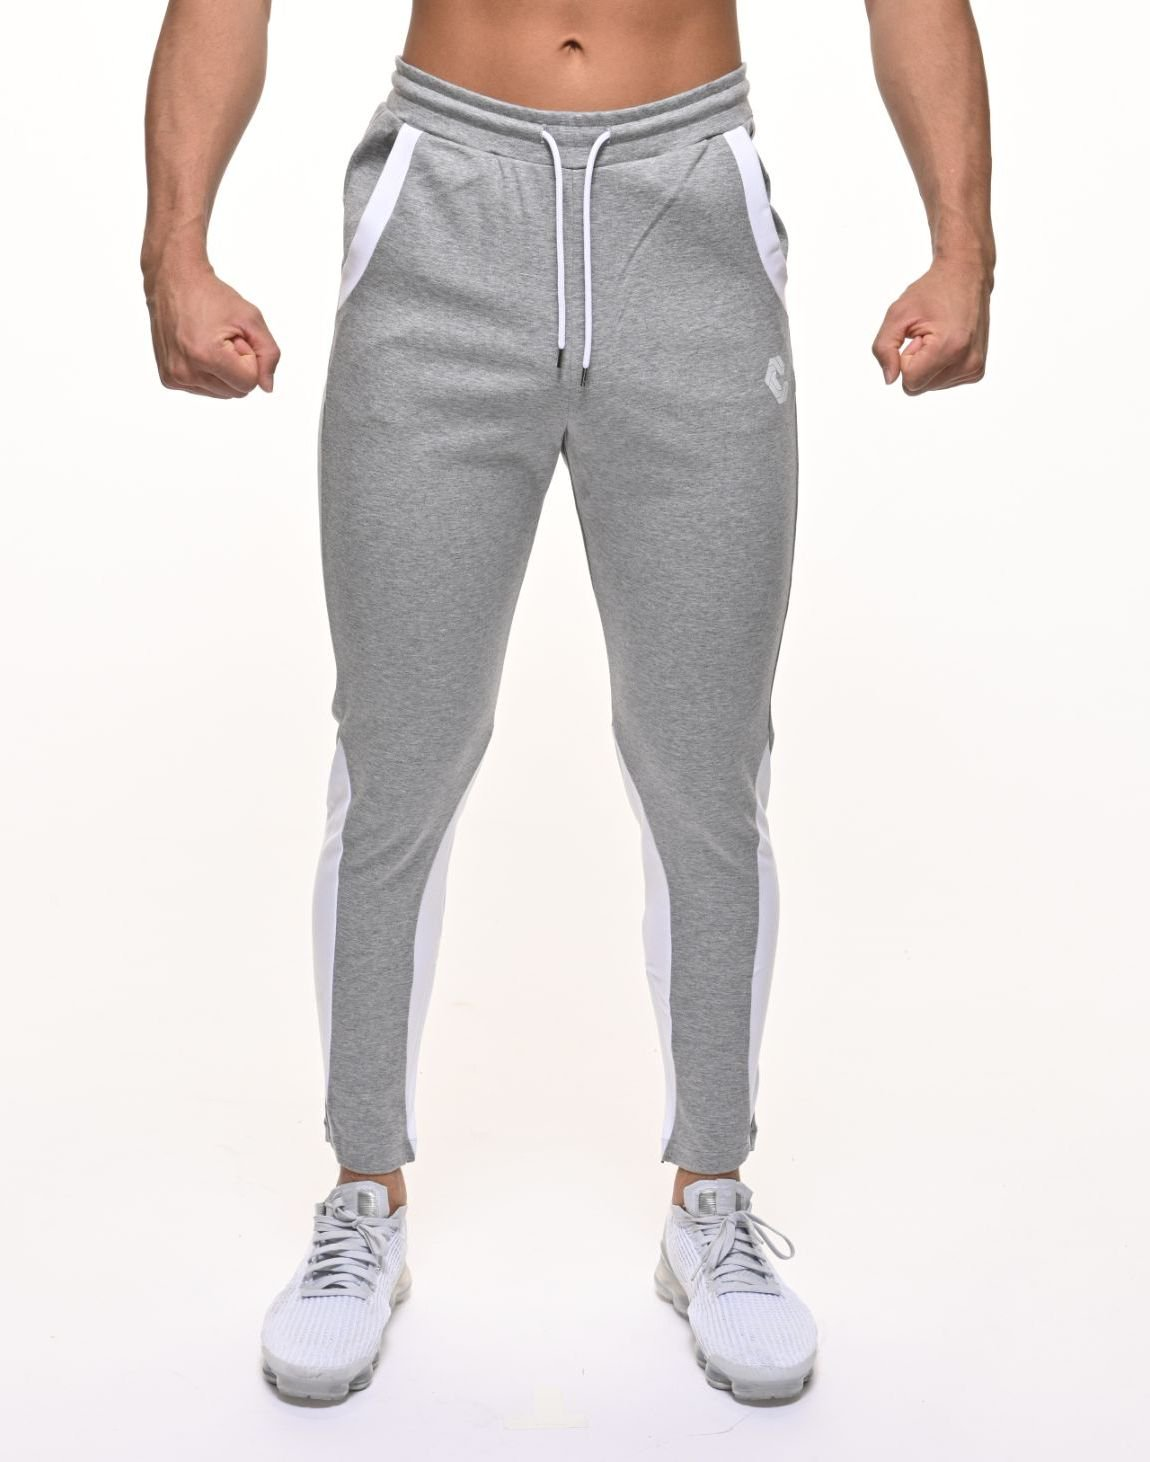 <img class='new_mark_img1' src='https://img.shop-pro.jp/img/new/icons1.gif' style='border:none;display:inline;margin:0px;padding:0px;width:auto;' />CRNS CALF SHAPE LINE PANTS【GRAY】